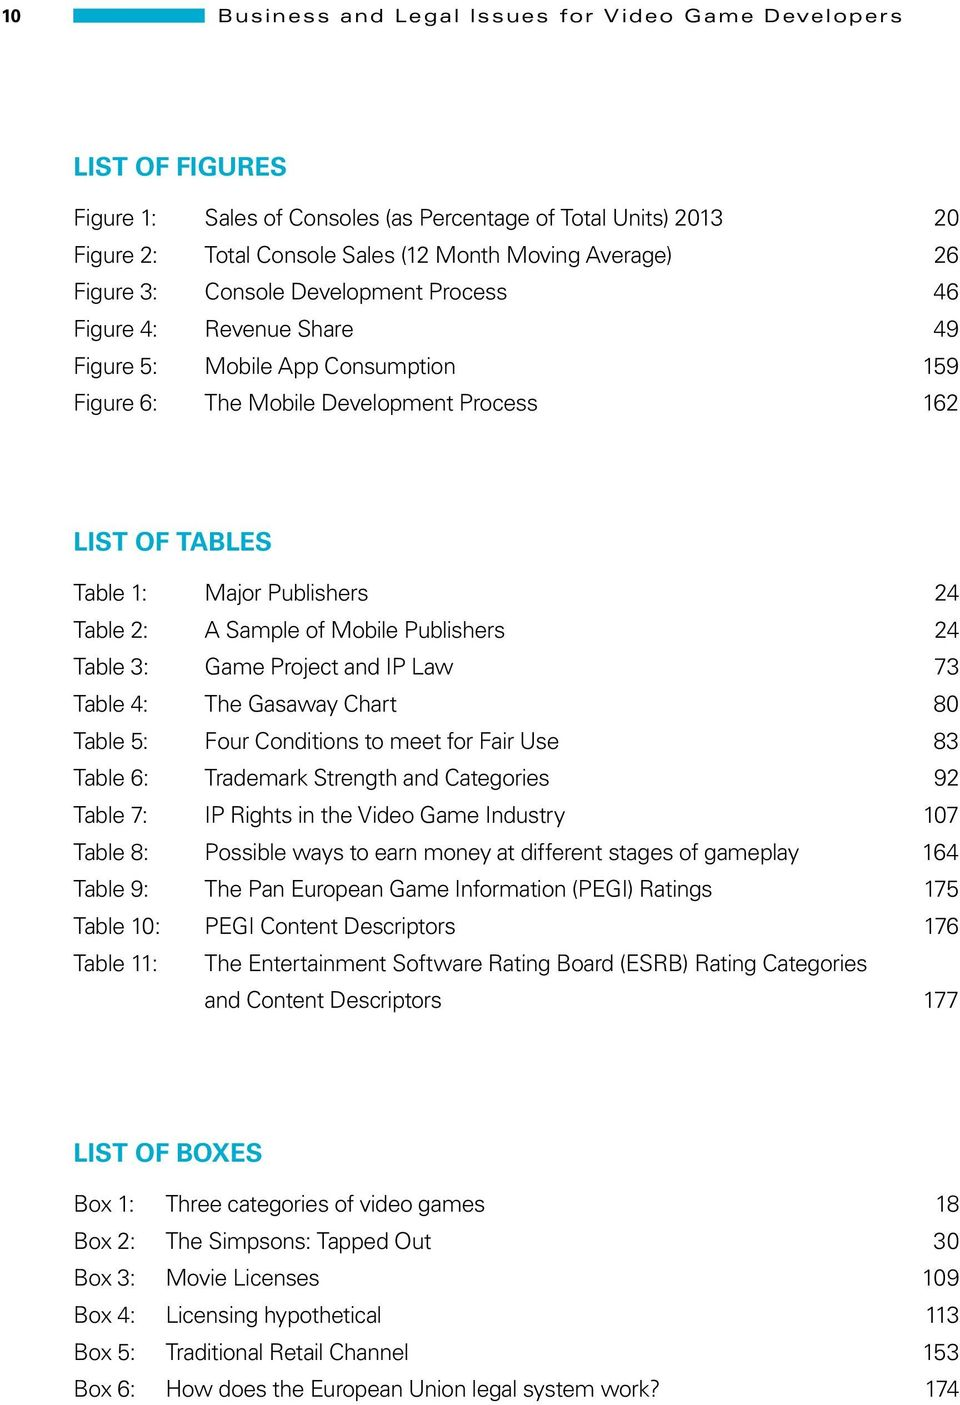 2: A Sample of Mobile Publishers 24 Table 3: Game Project and IP Law 73 Table 4: The Gasaway Chart 80 Table 5: Four Conditions to meet for Fair Use 83 Table 6: Trademark Strength and Categories 92